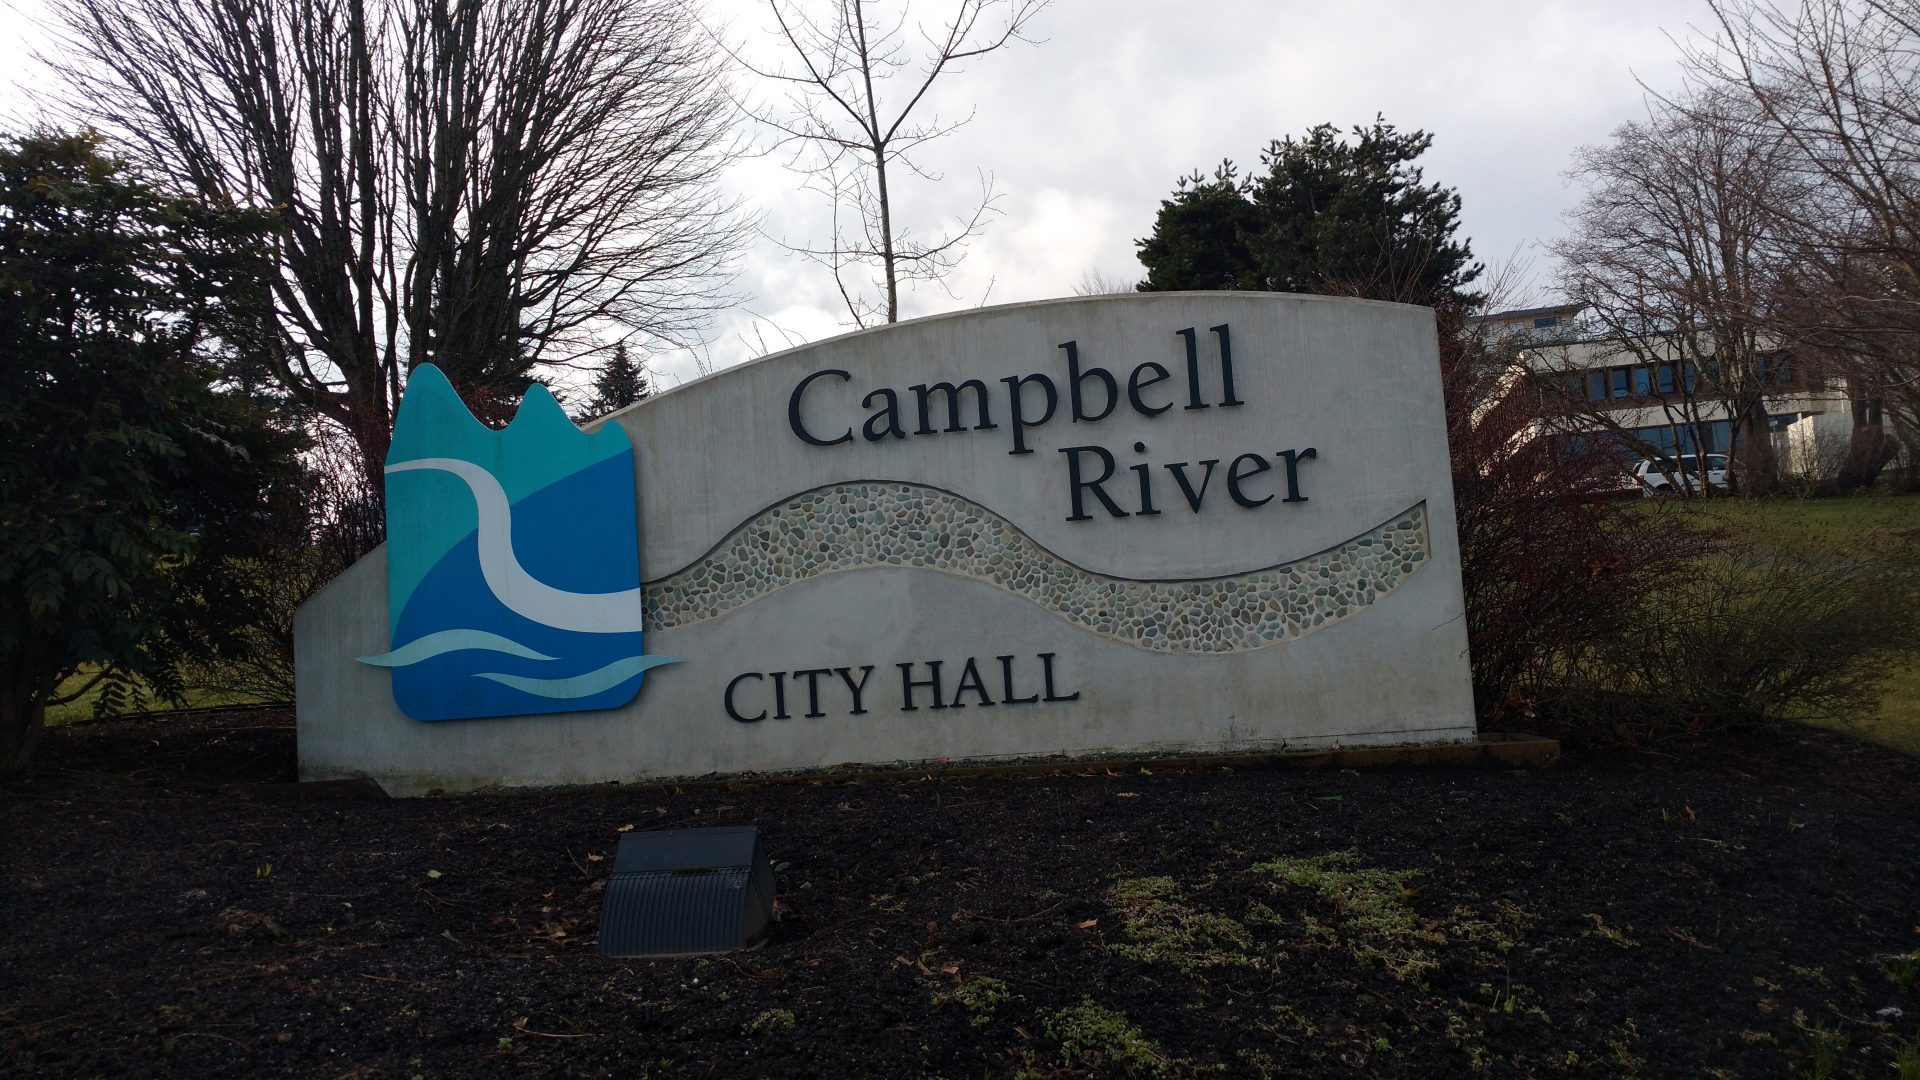 New regional composting facility opening in Campbell River - My Comox Valley Now